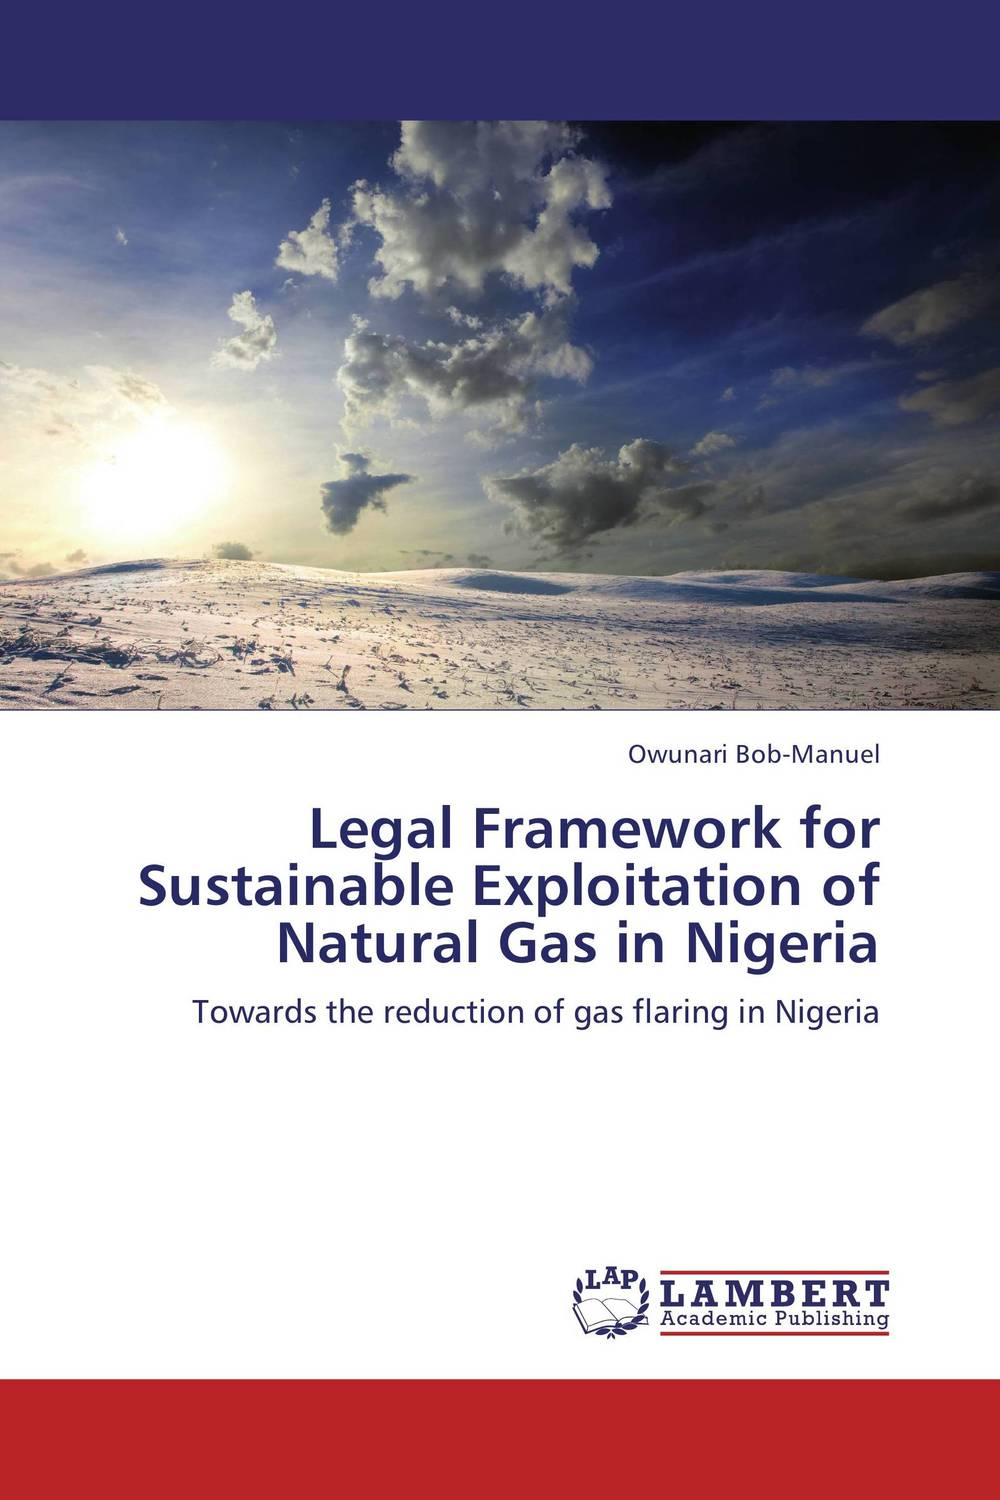 Legal Framework for Sustainable Exploitation of Natural Gas in Nigeria dearomatization of crude oil